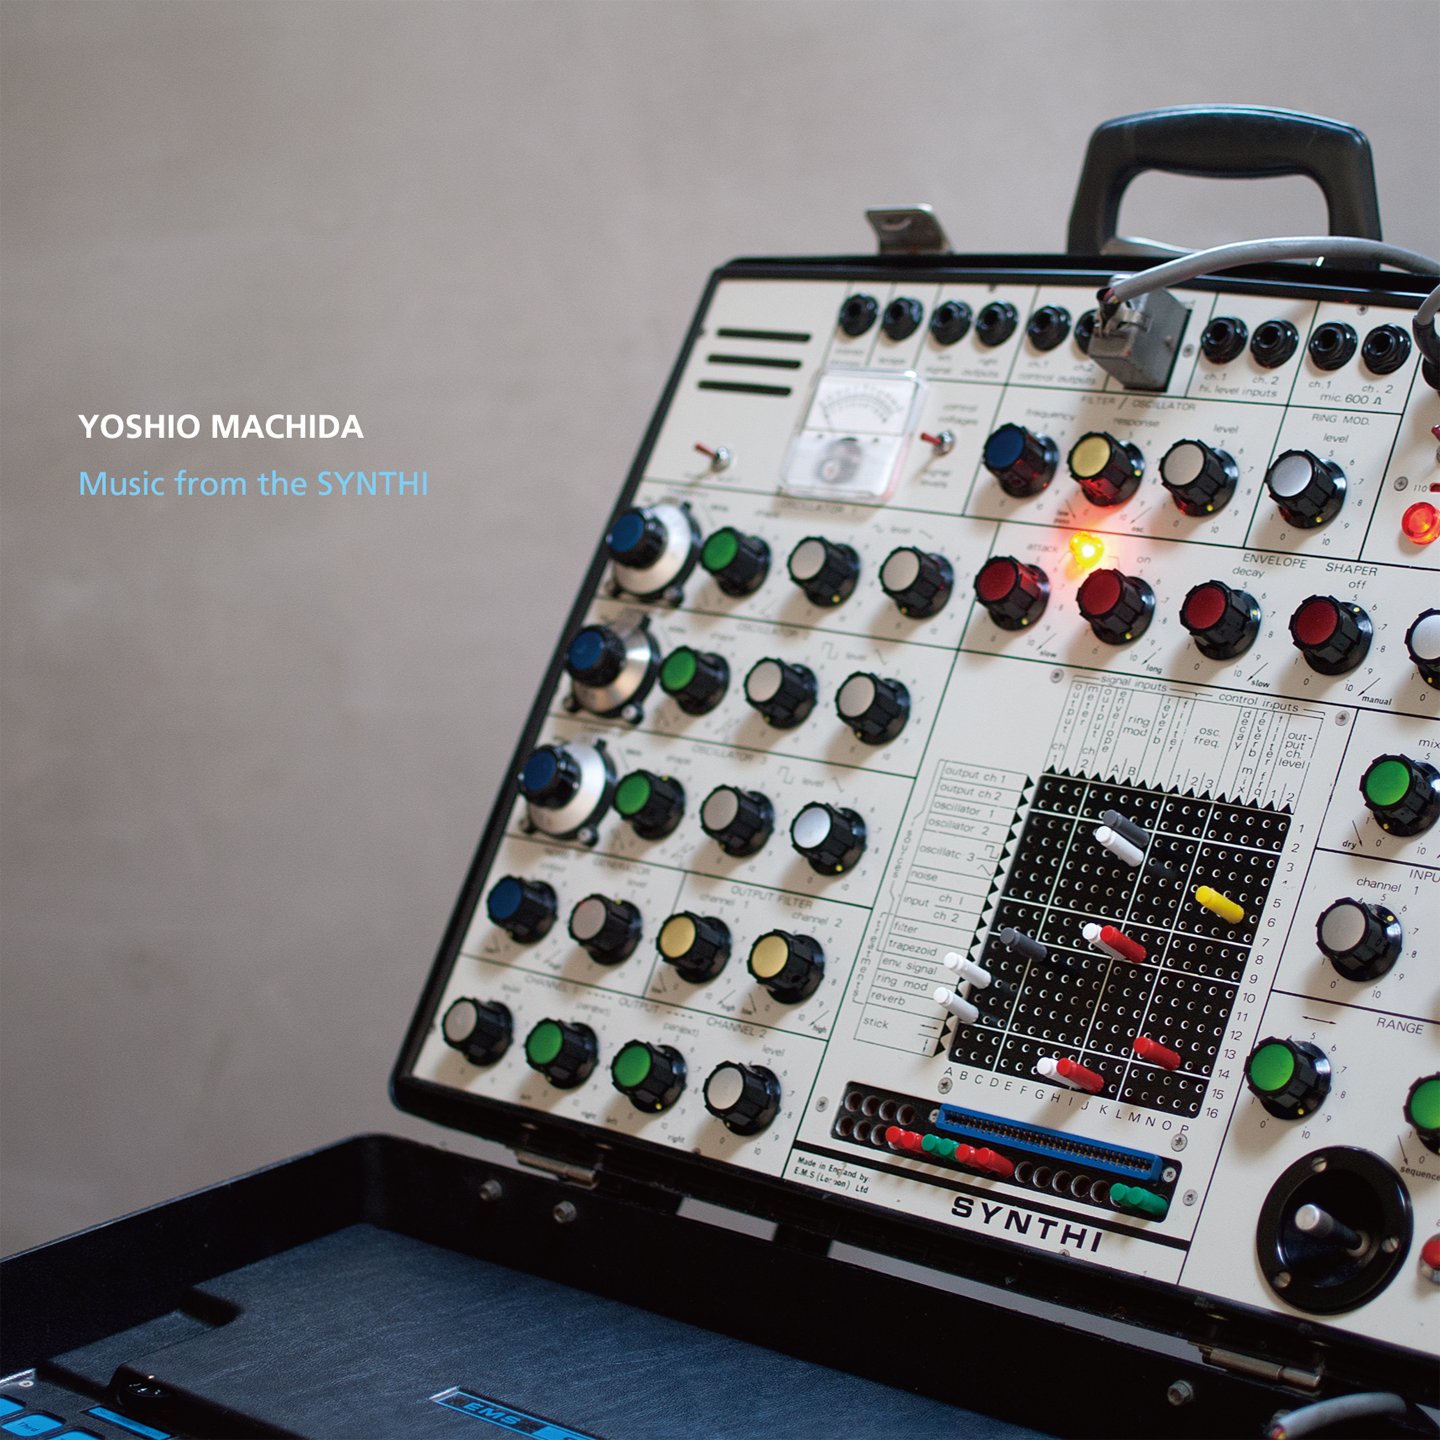 Music from the SYNTHI